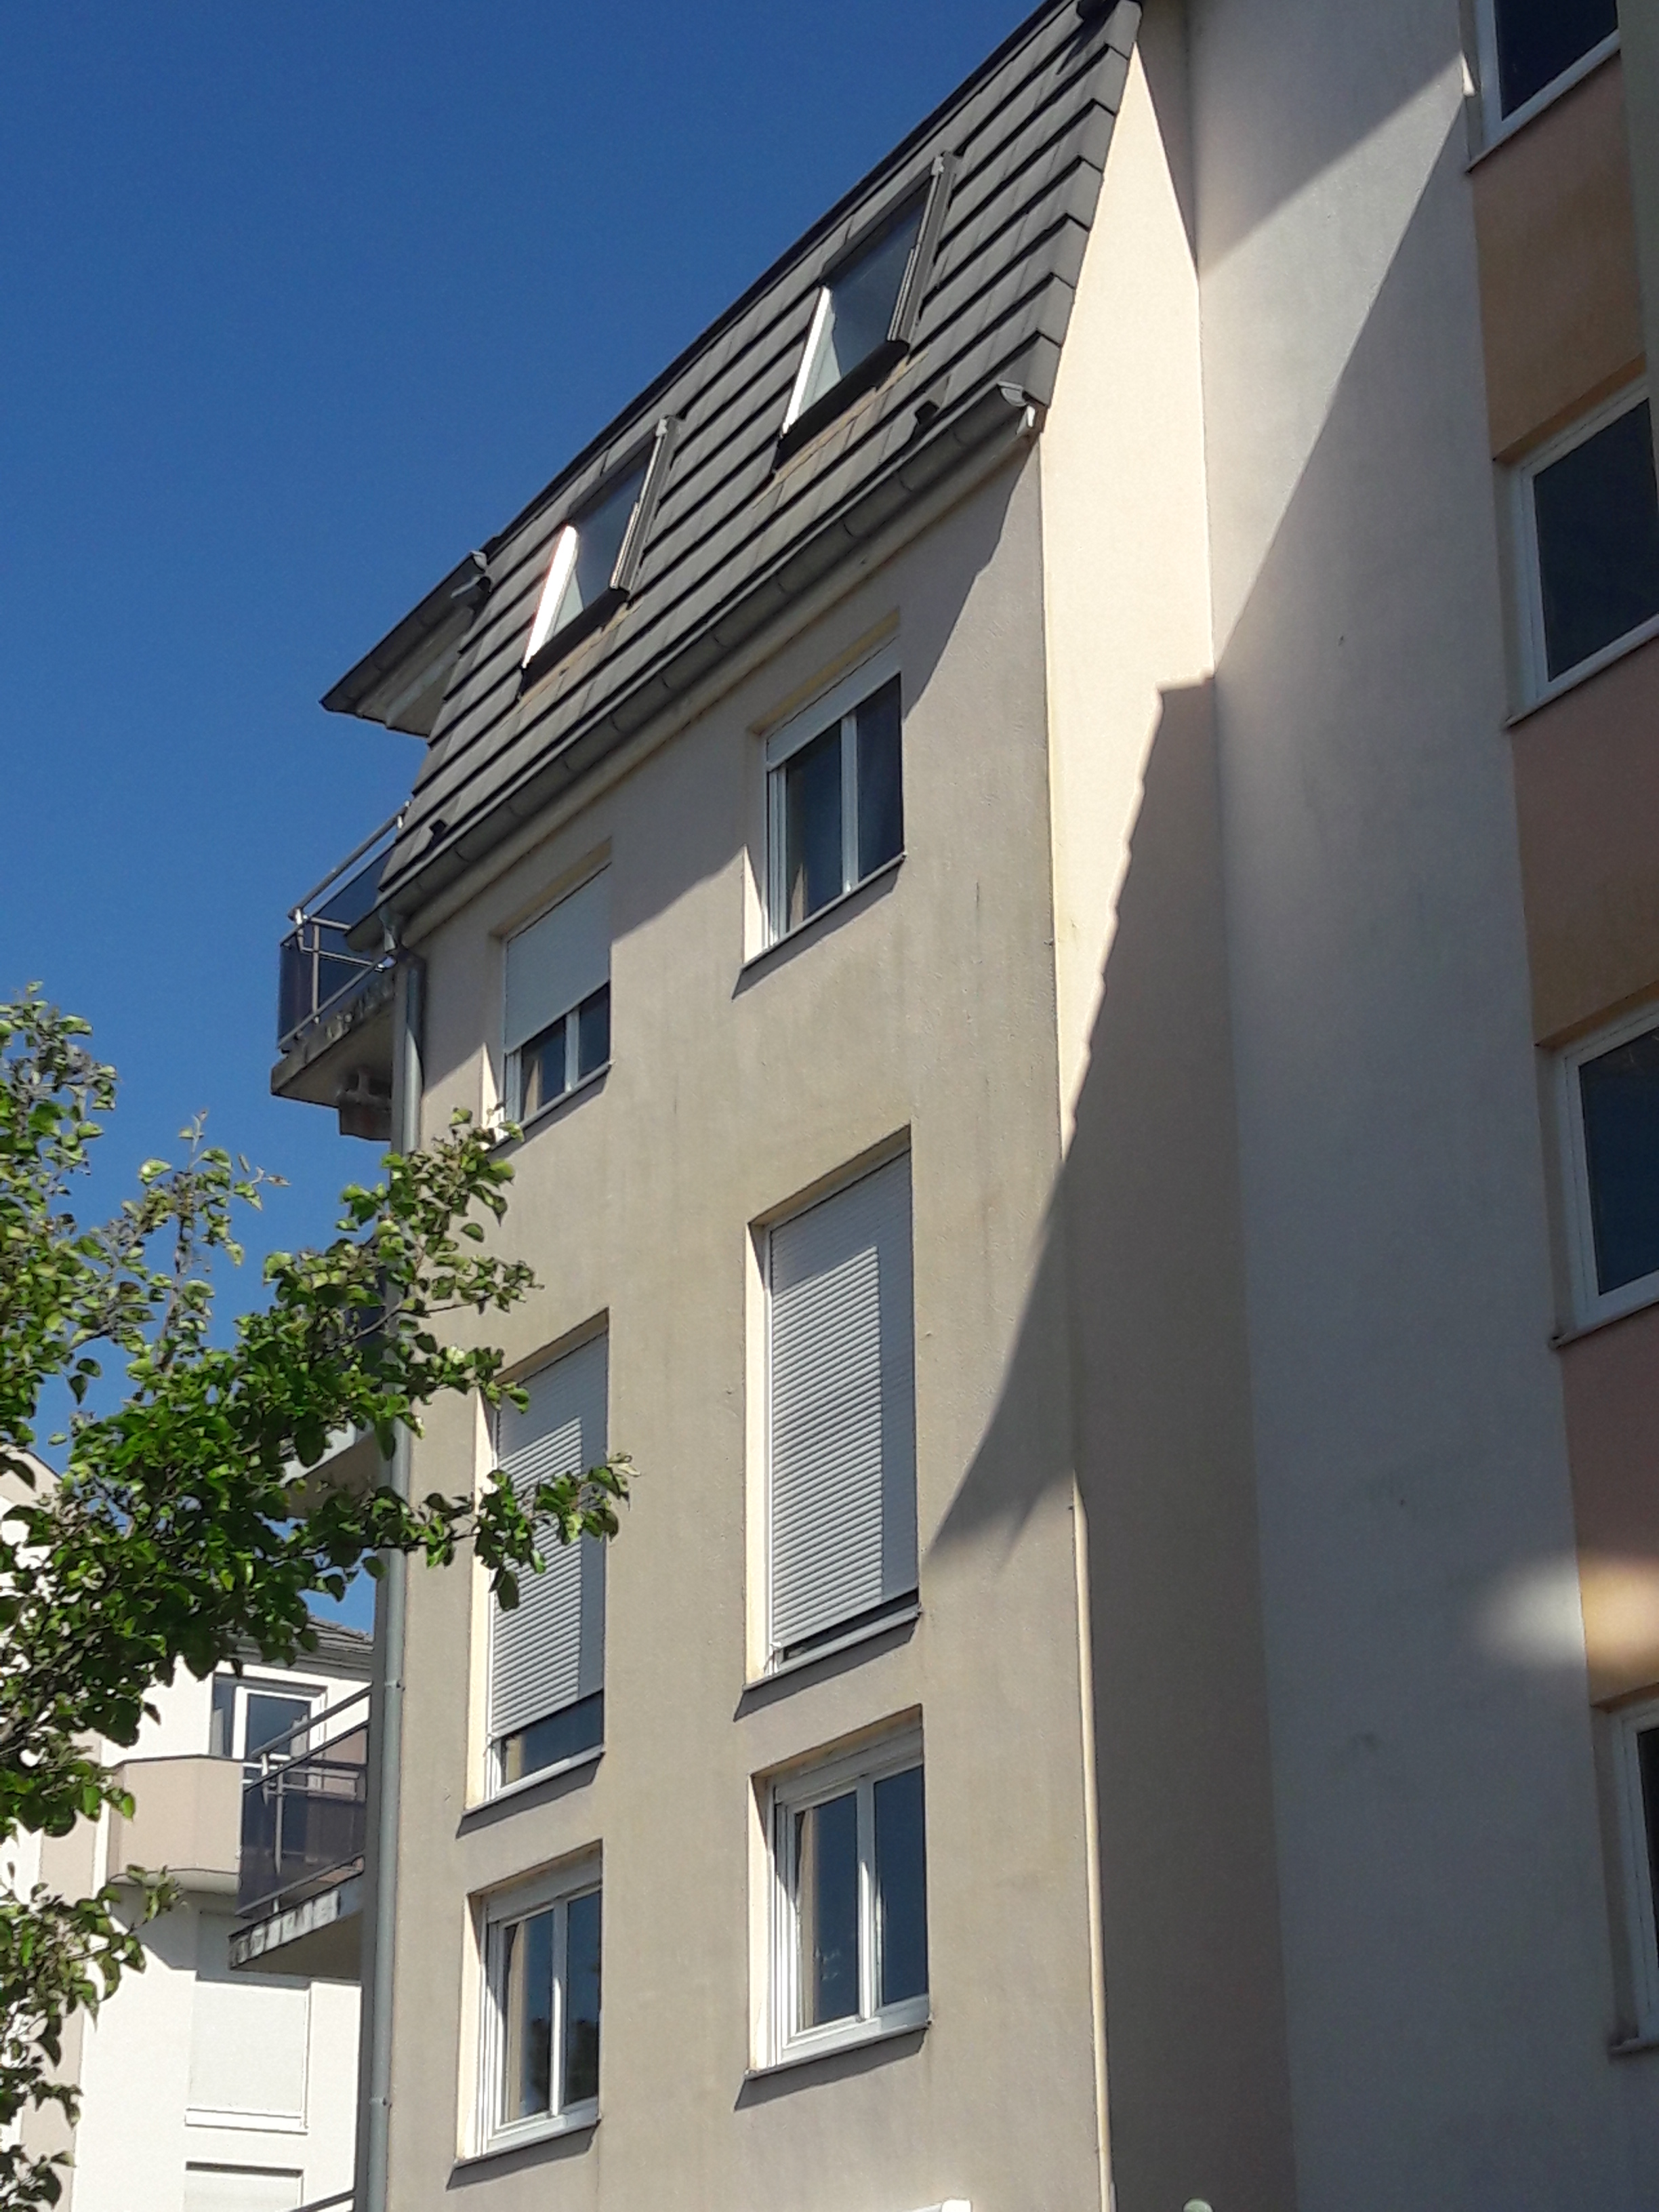 Studio in Strasbourg - Vacation, holiday rental ad # 34897 Picture #0